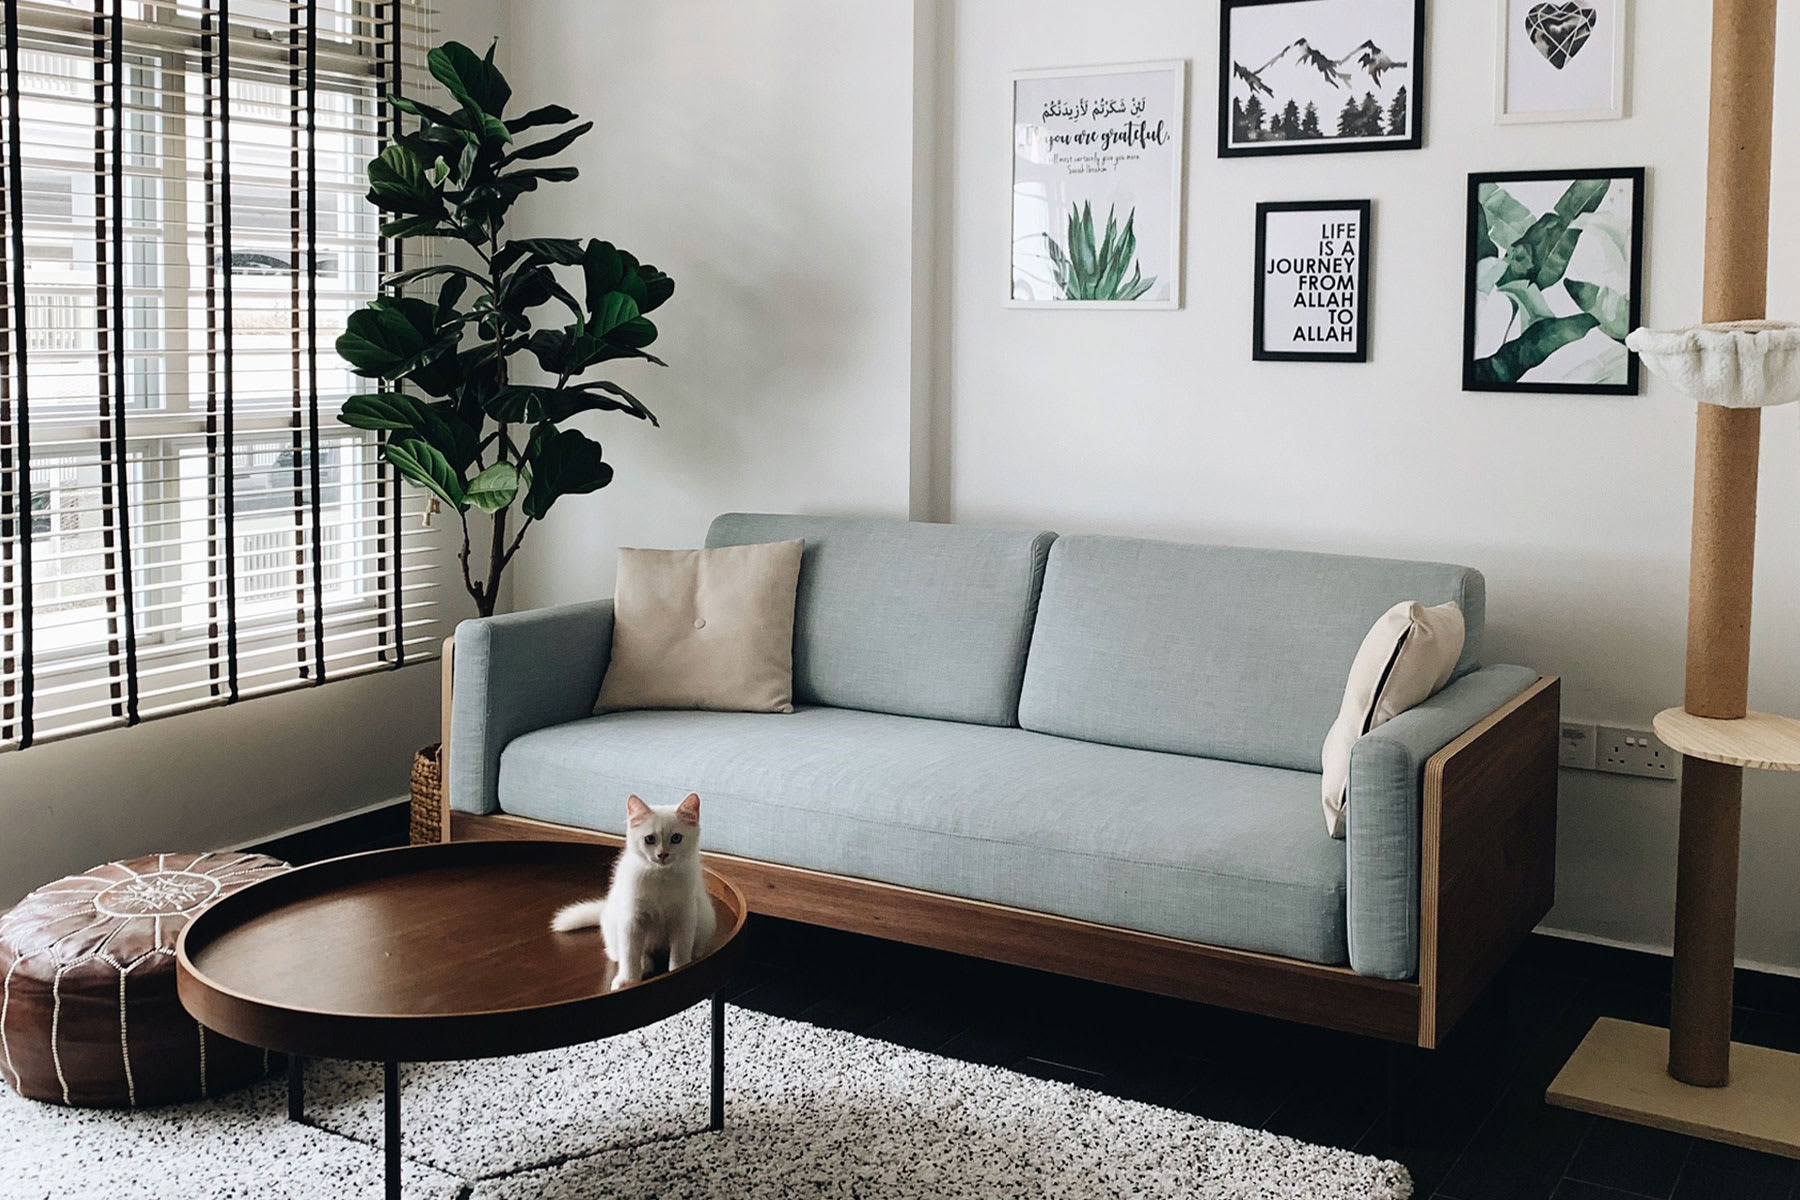 3 seater sofa in living room with cat post, coffee table, plant and rug